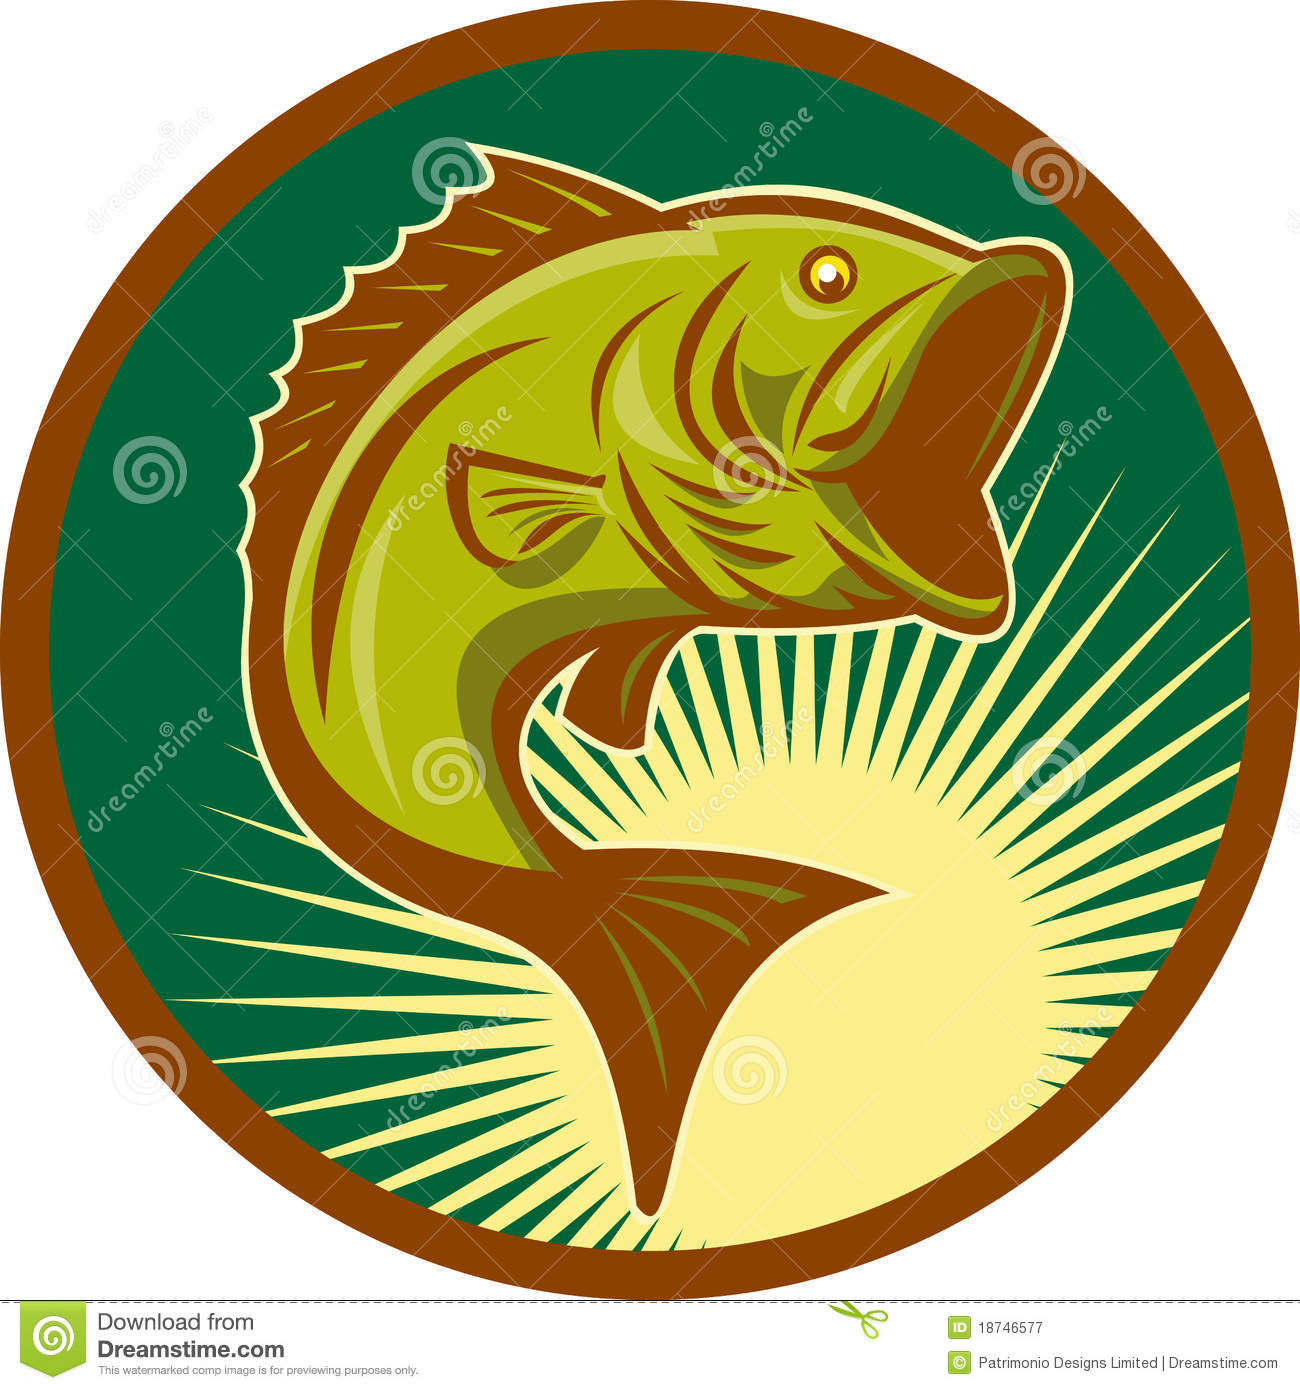 Bass clipart fishing competition. Leaping largemouth